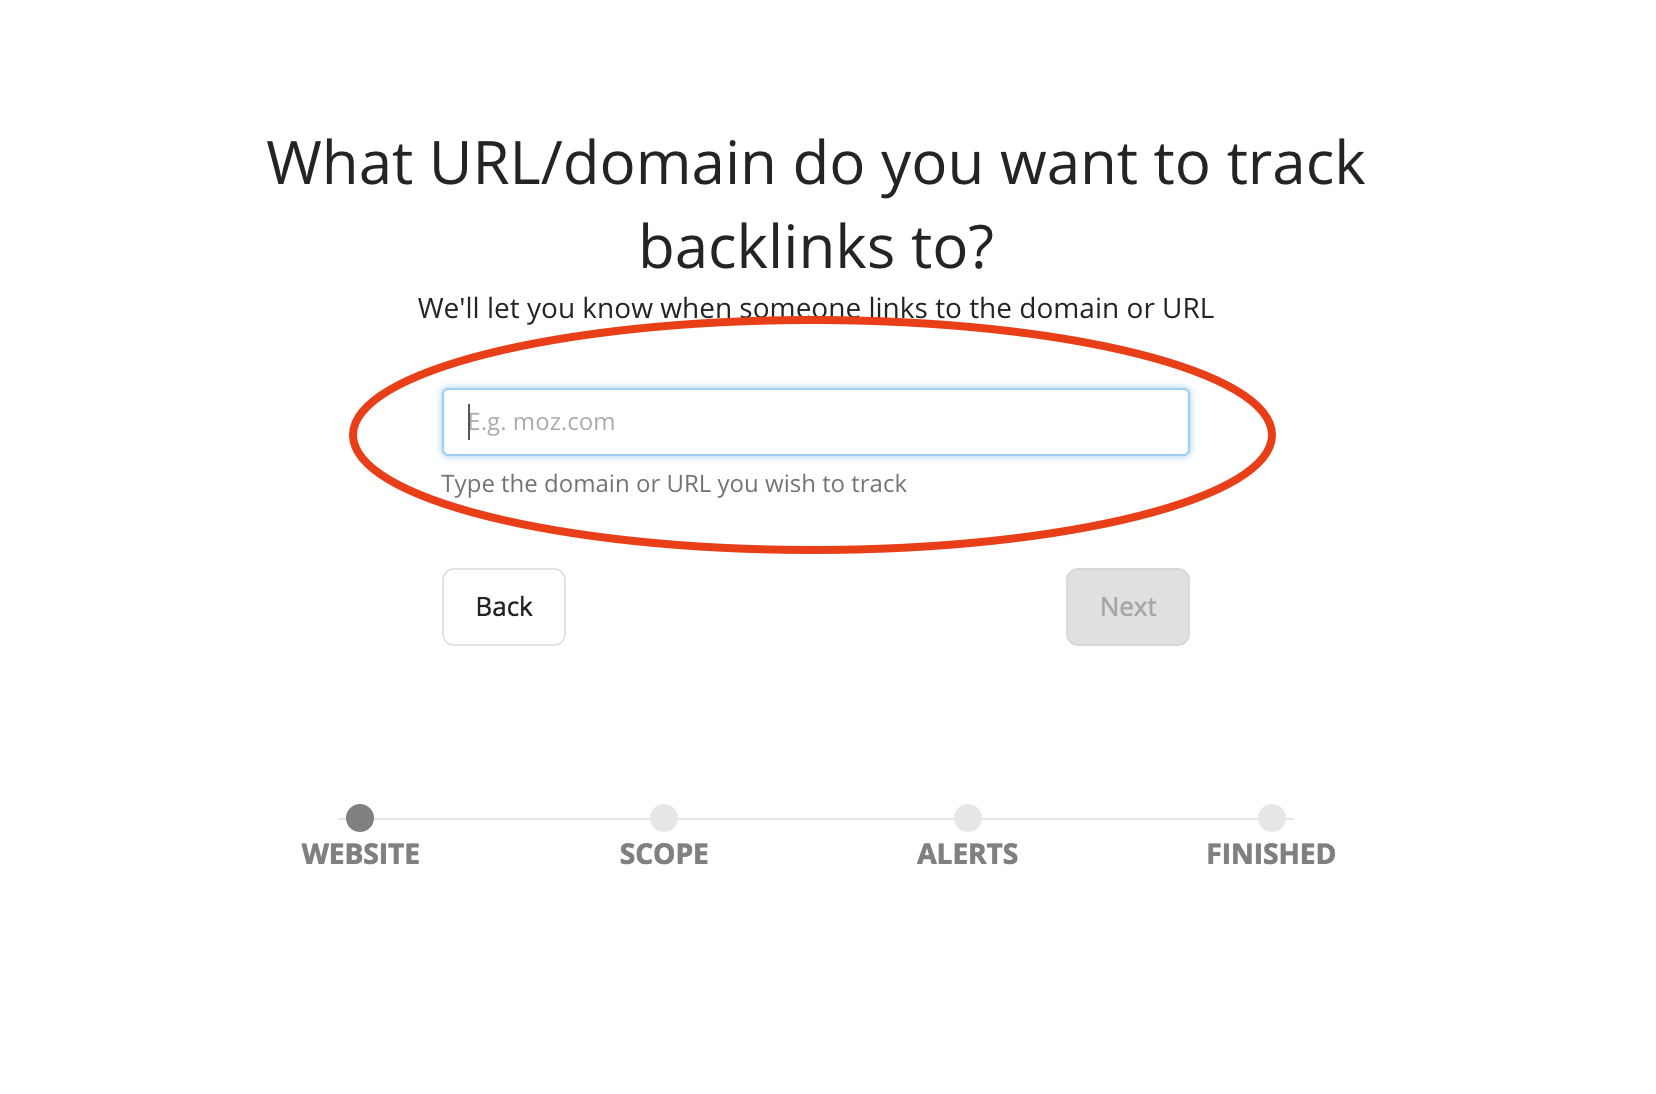 Backlinks copy